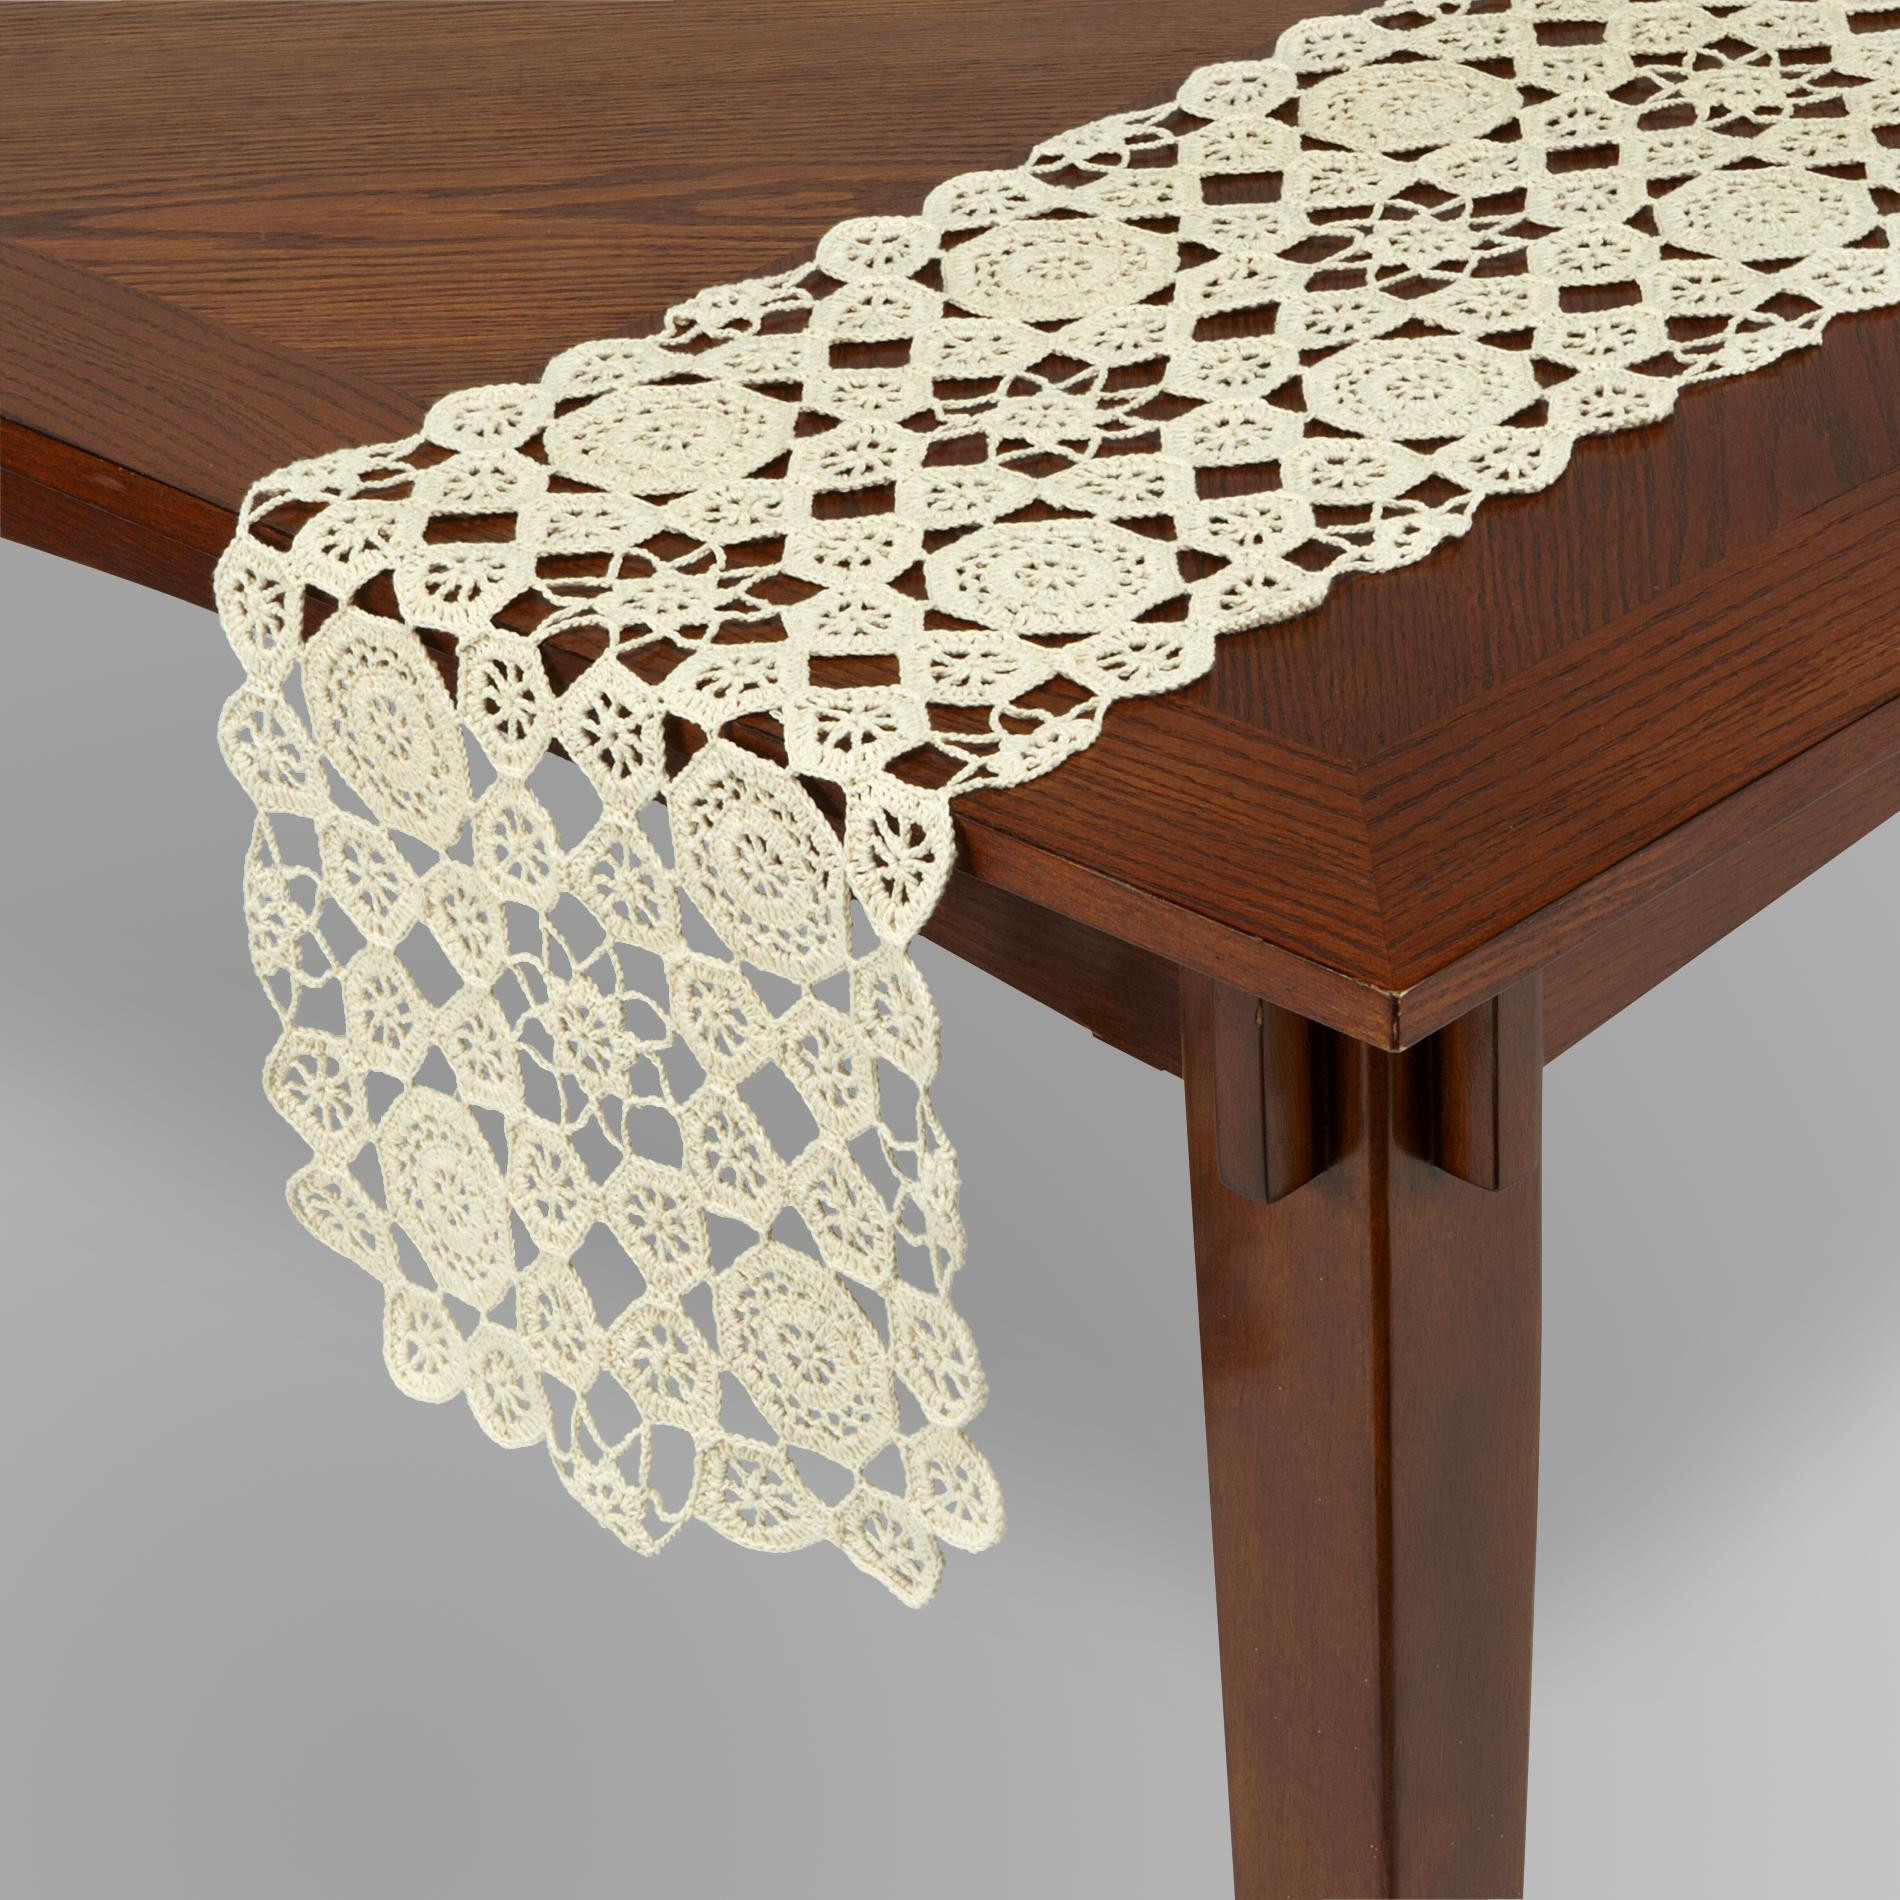 Crochet Runner Luxury Essential Home Crochet Table Runner Home Dining Of Fresh 45 Ideas Crochet Runner